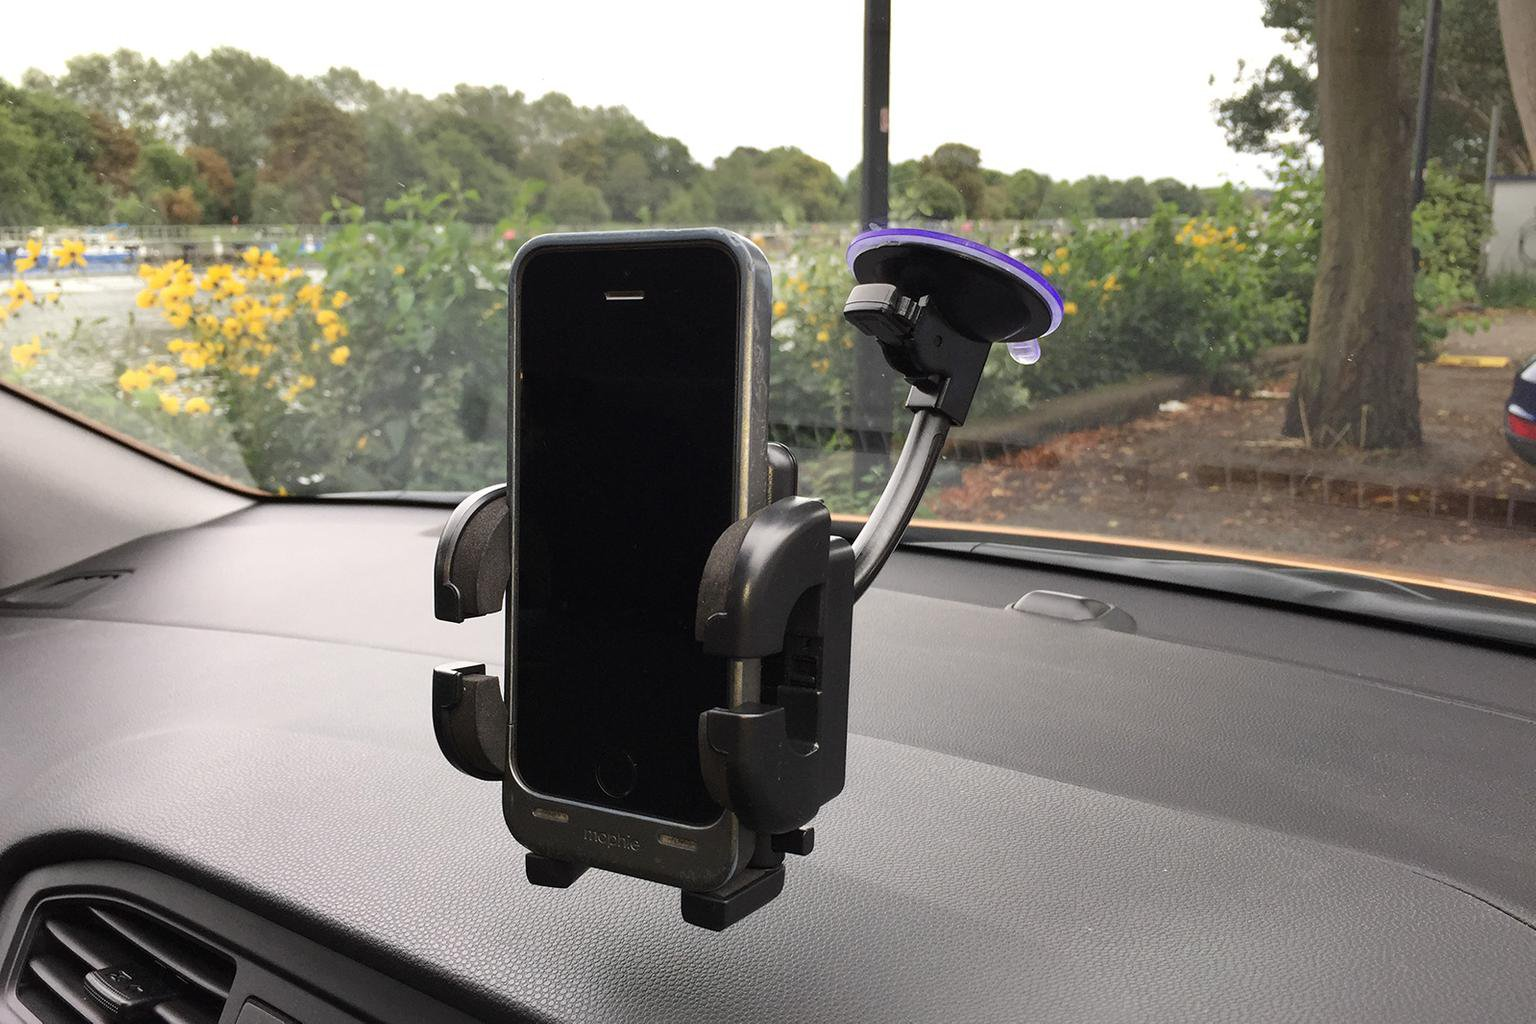 What is the best smartphone holder for your car?